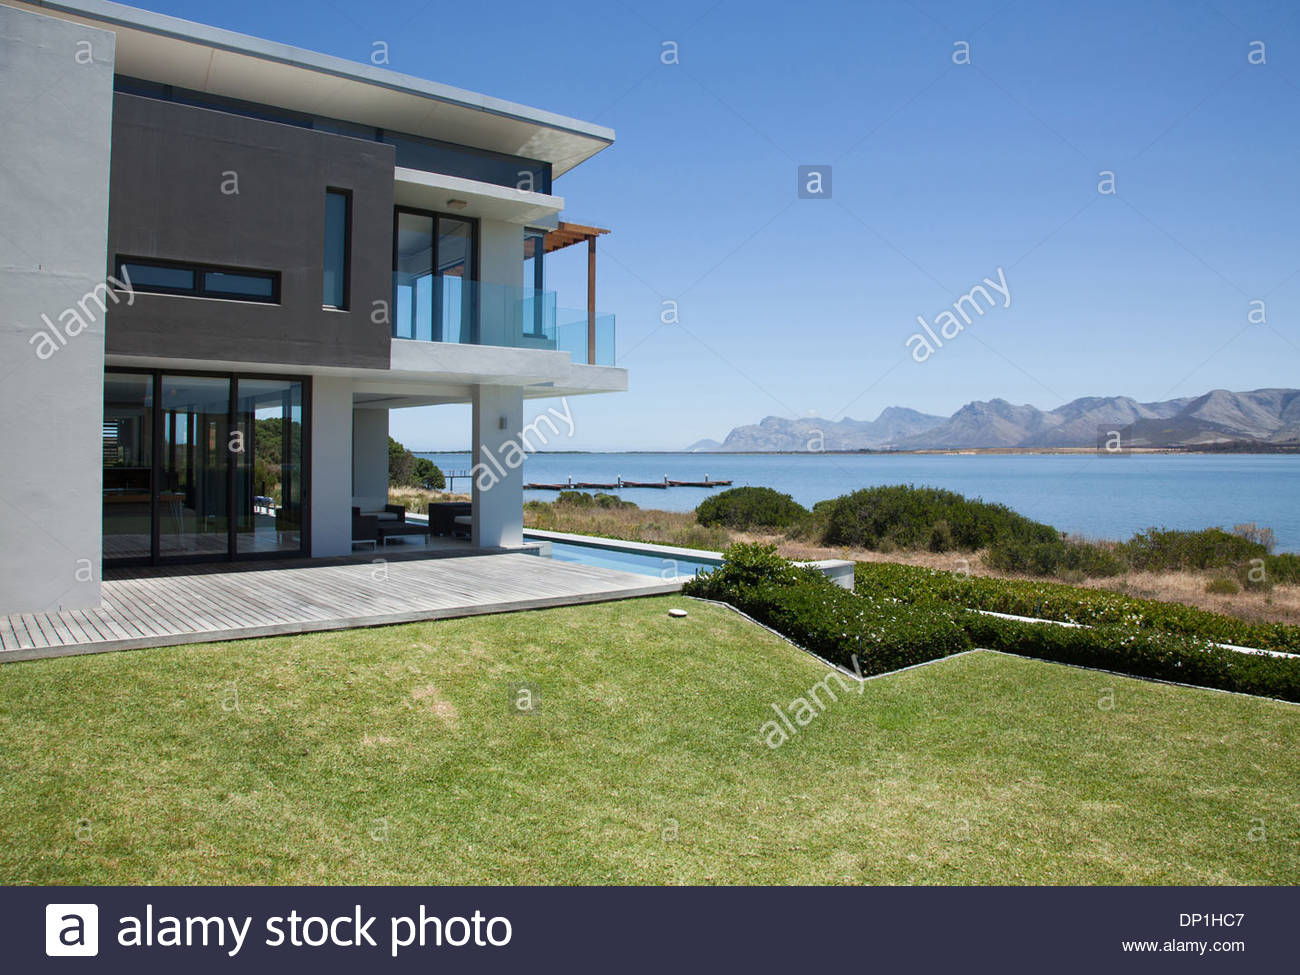 View of lake from modern house - Stock Image